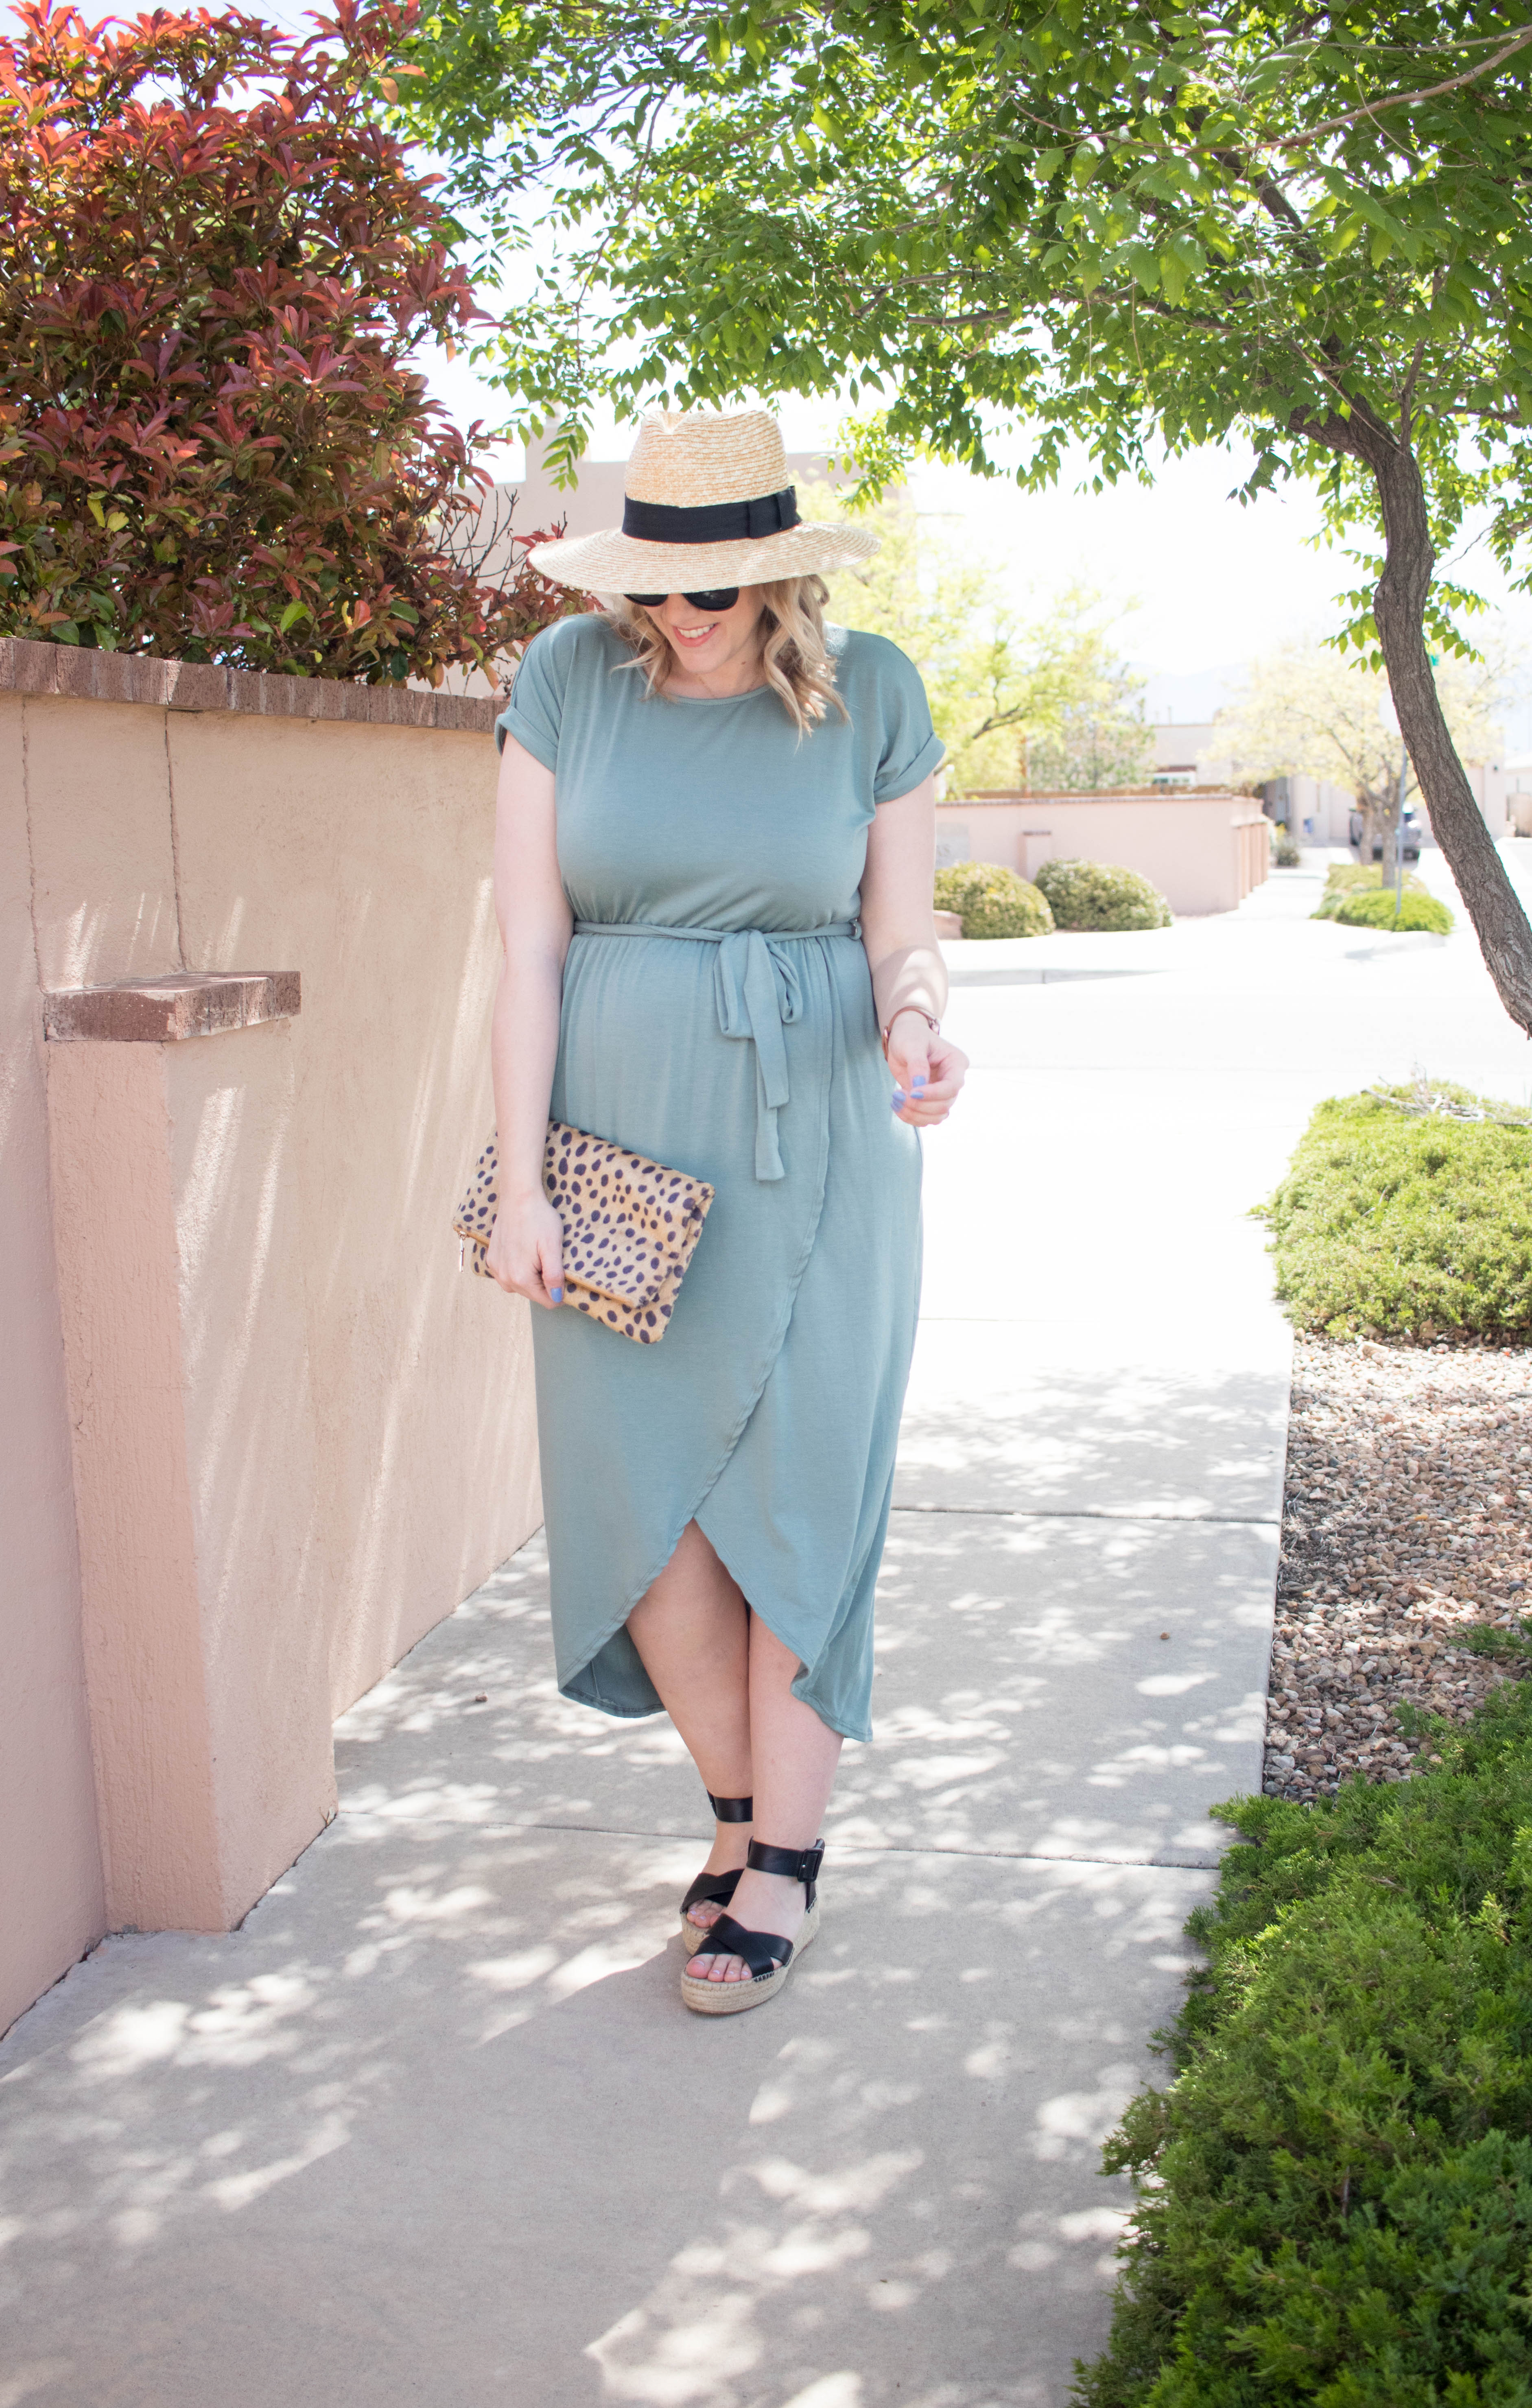 pregnancy style wrap dress outfit #pregnancystyle #bumpstyle #styleblogger